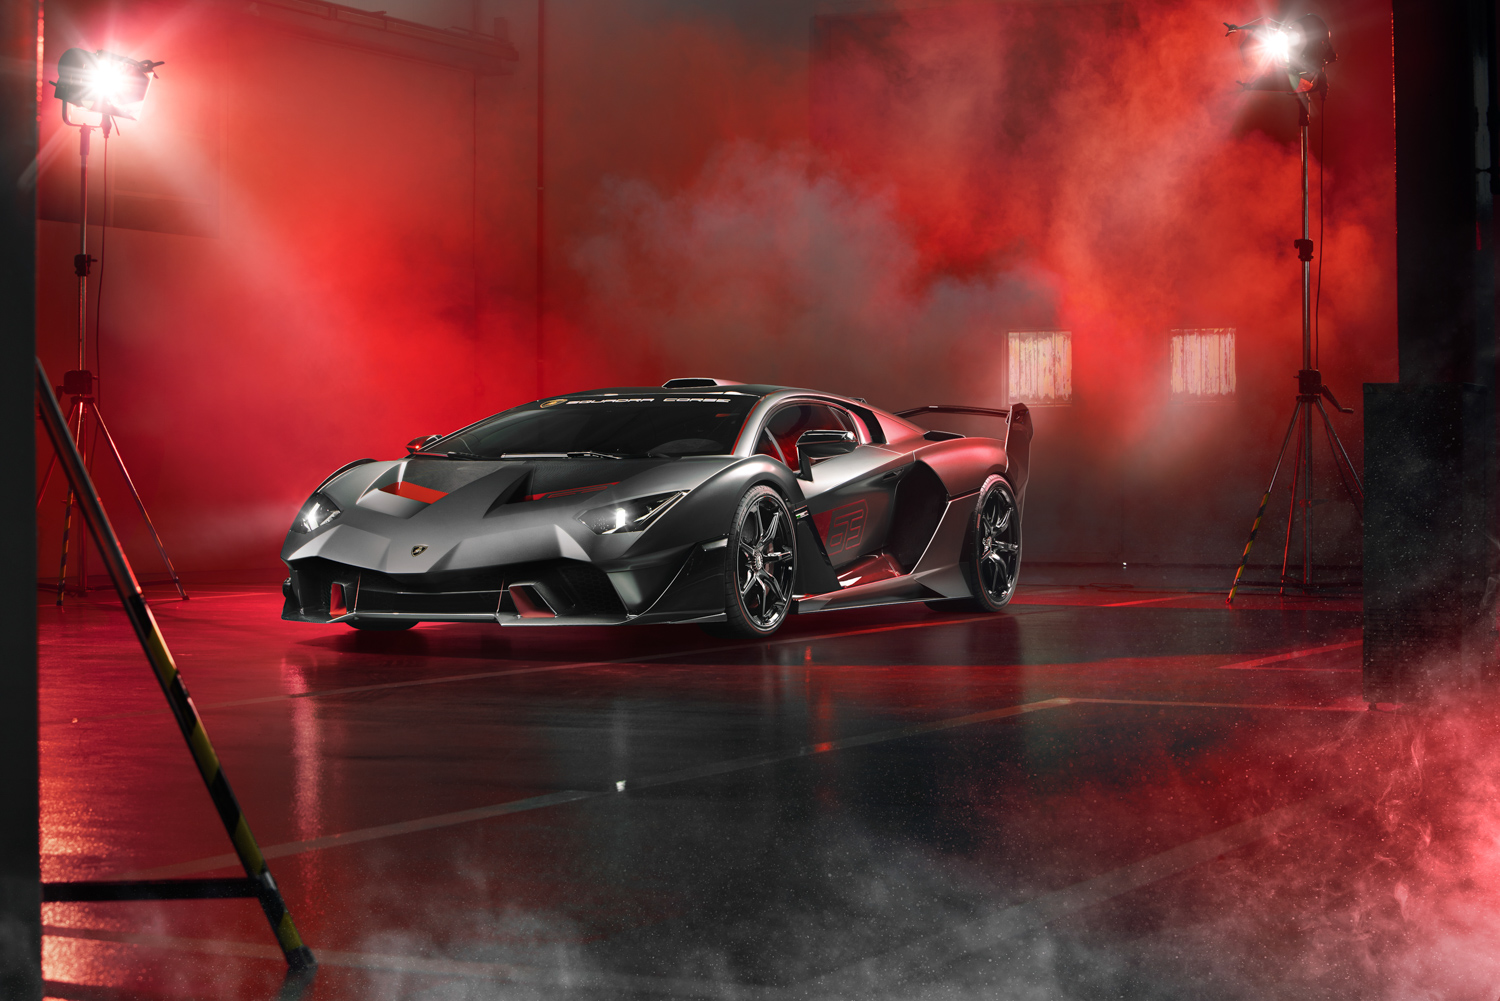 Lamborghini SC18 front 3/4 lights fog red